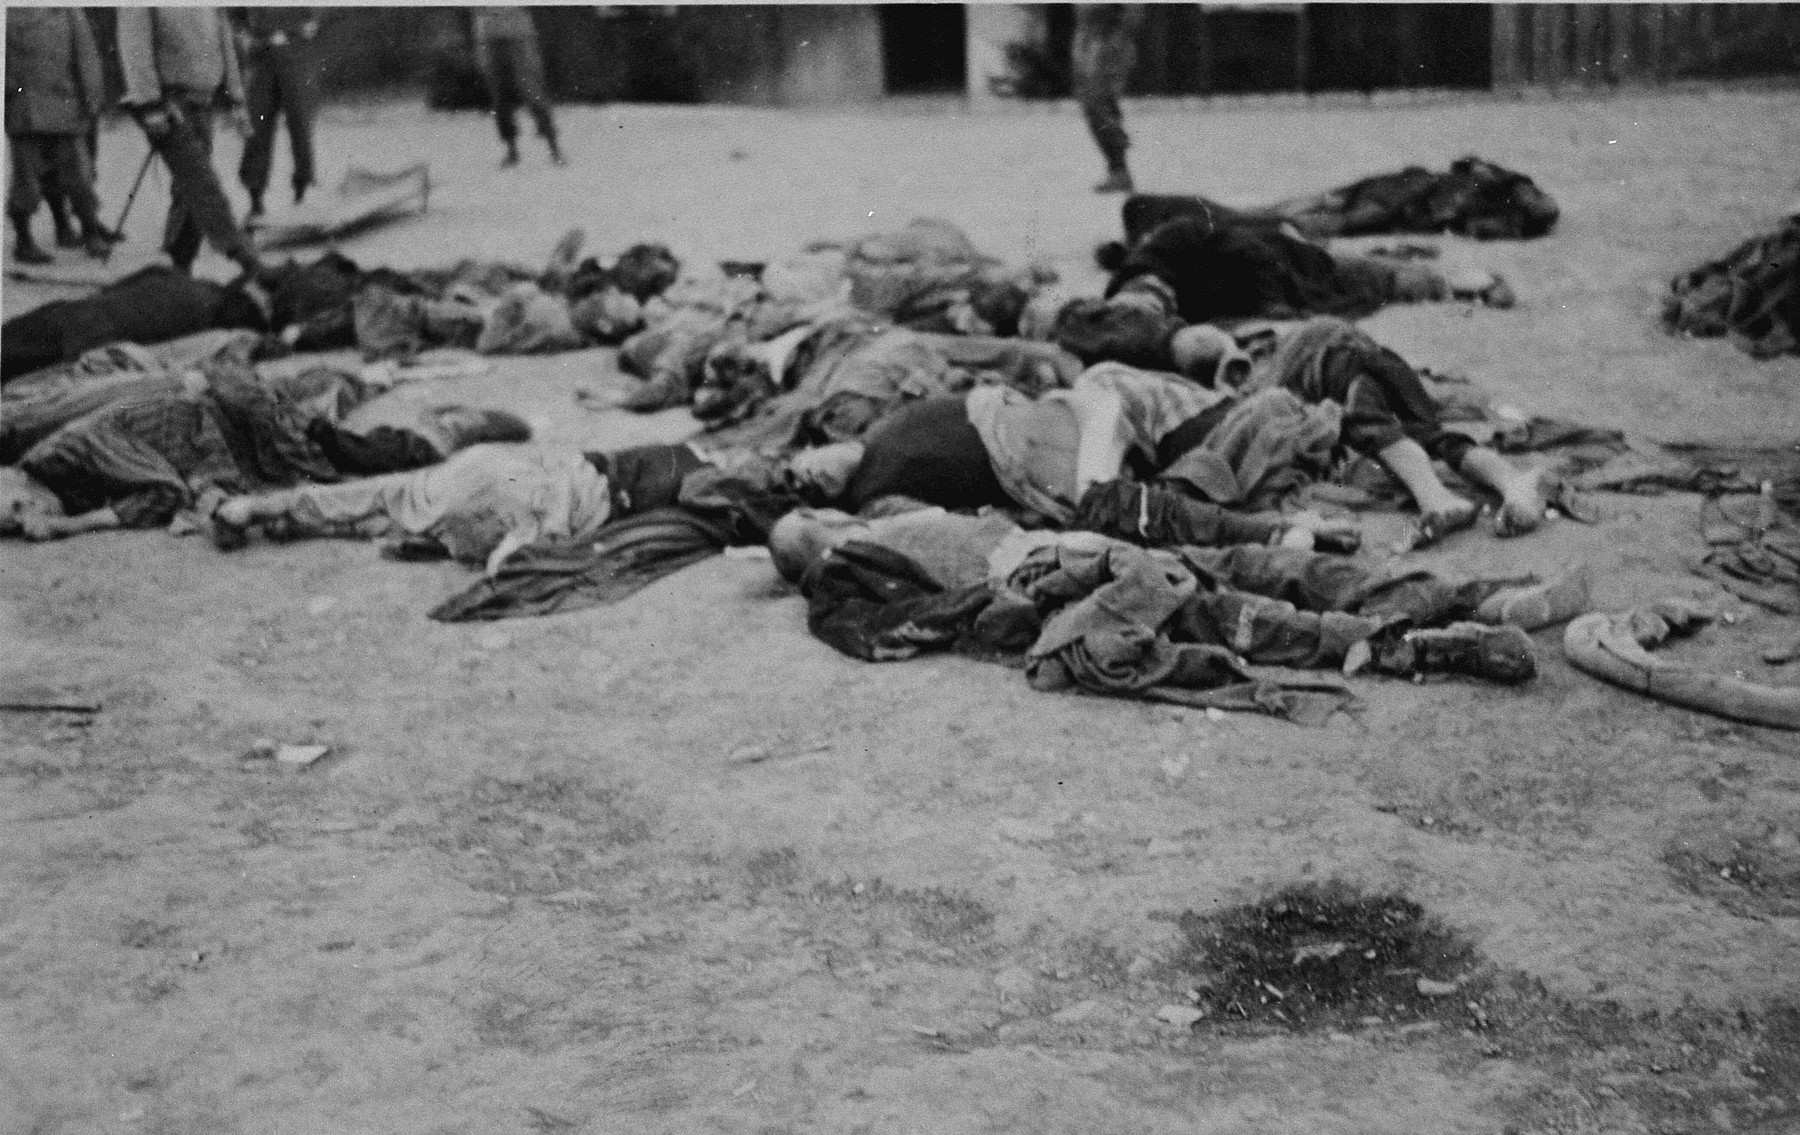 The corpses of prisoners machine-gunned by SS guards just prior to evacuation of the camp.